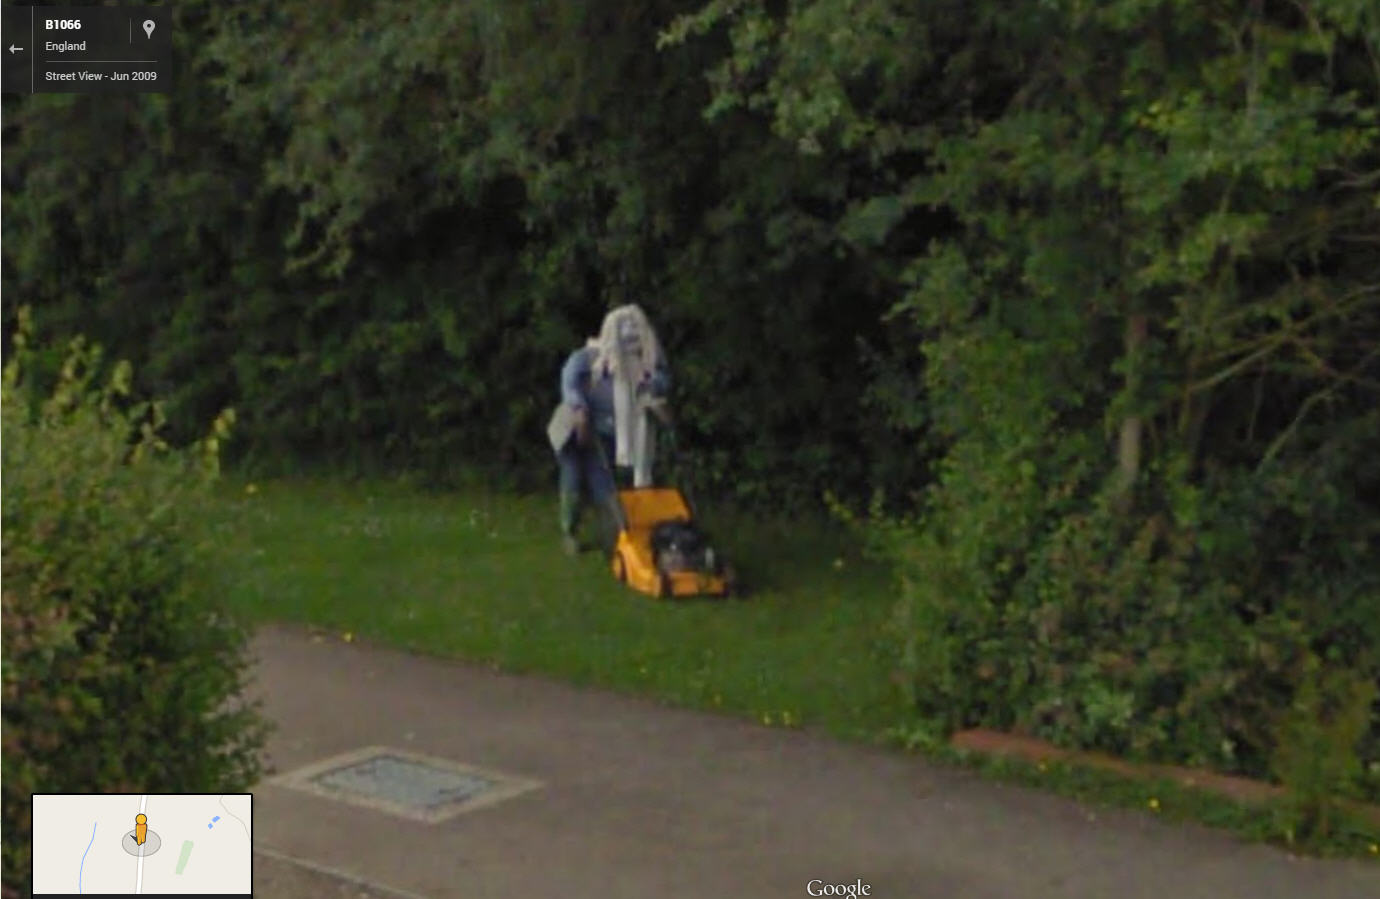 Strange outfit for lawnmowing